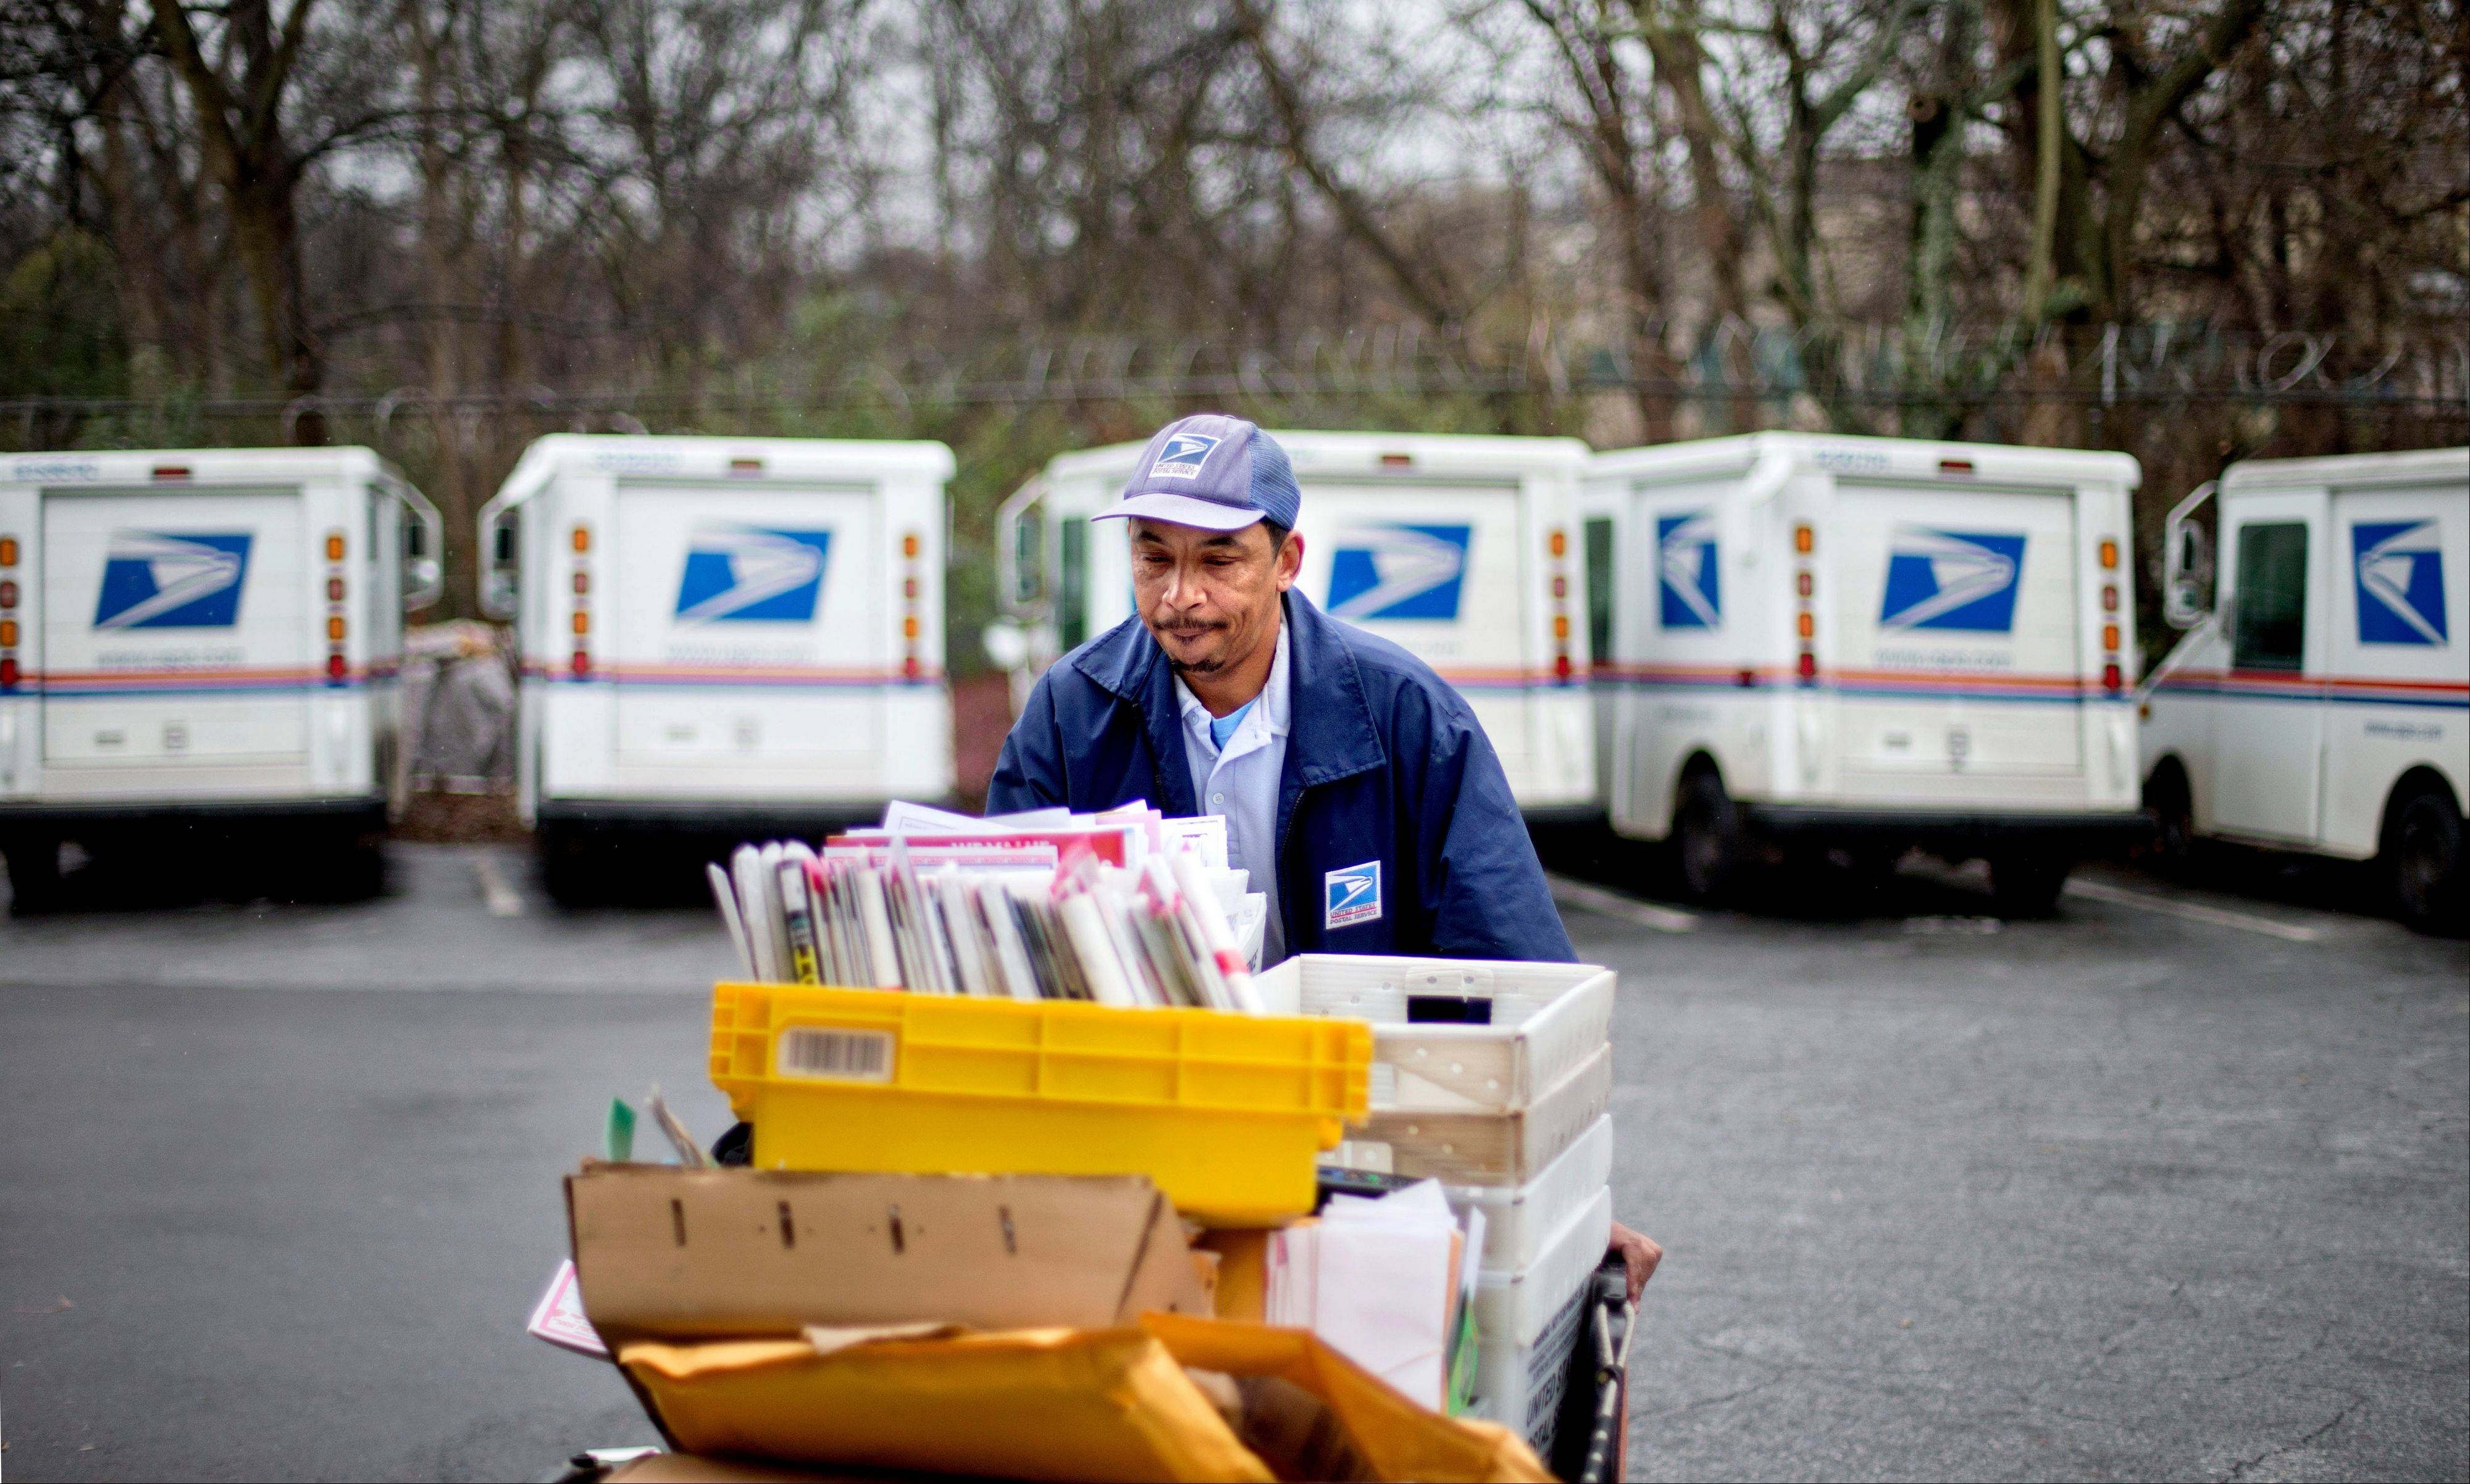 The U.S. Postal Service says it will delay plans to cut Saturday mail delivery because Congress isn't allowing the change.